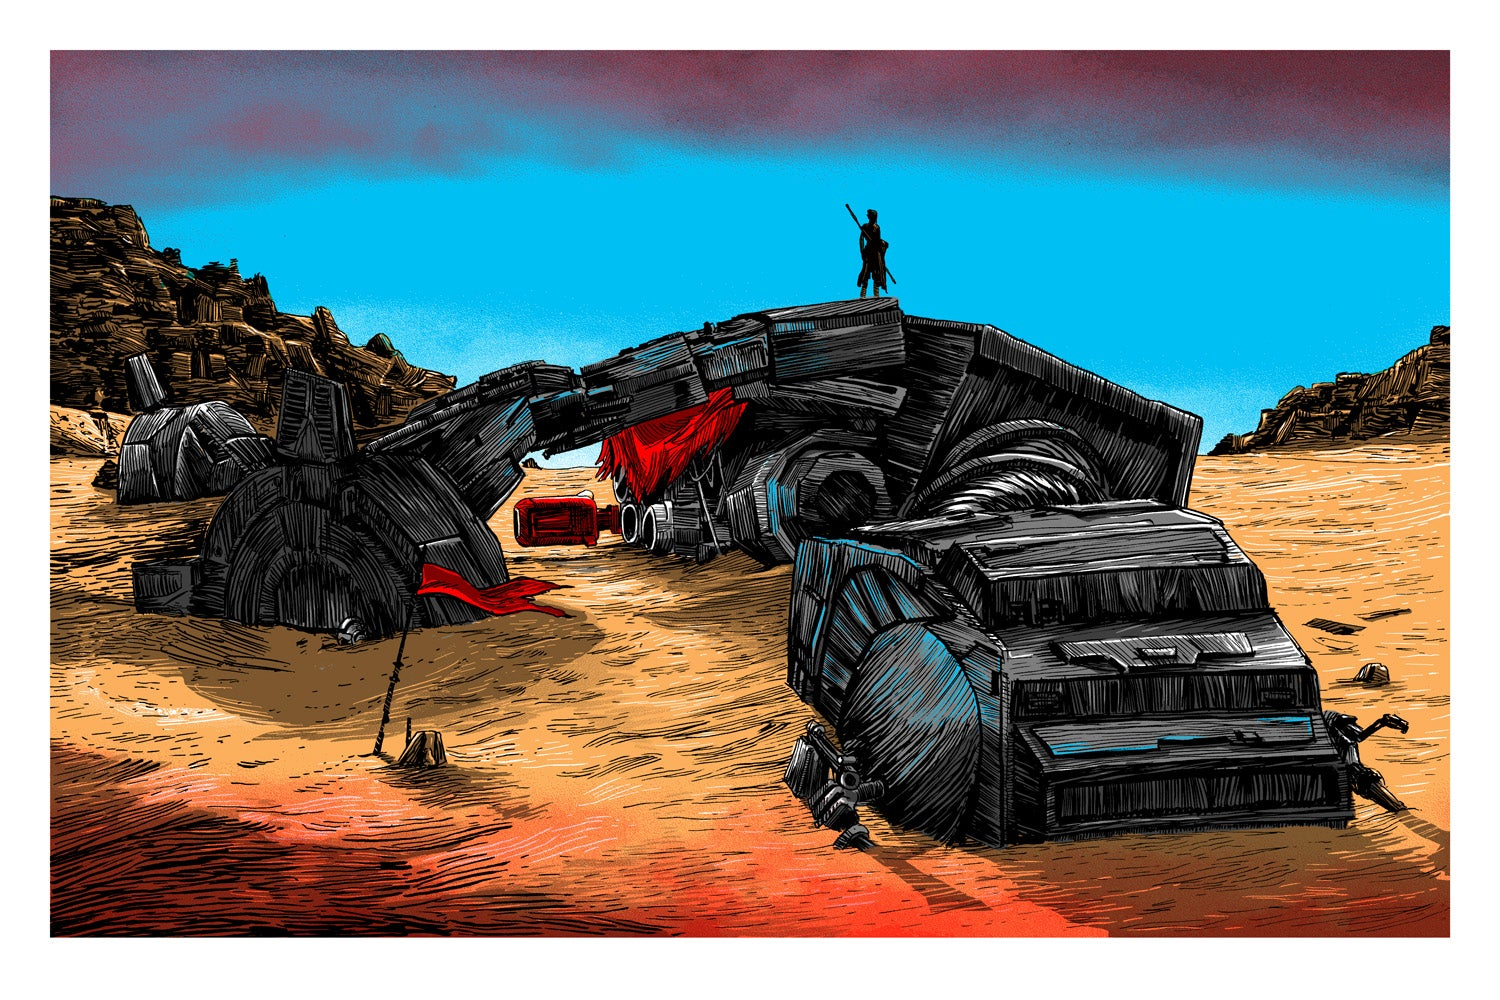 It's a Lonely Day on Jakku in This Majestic Star Wars Art